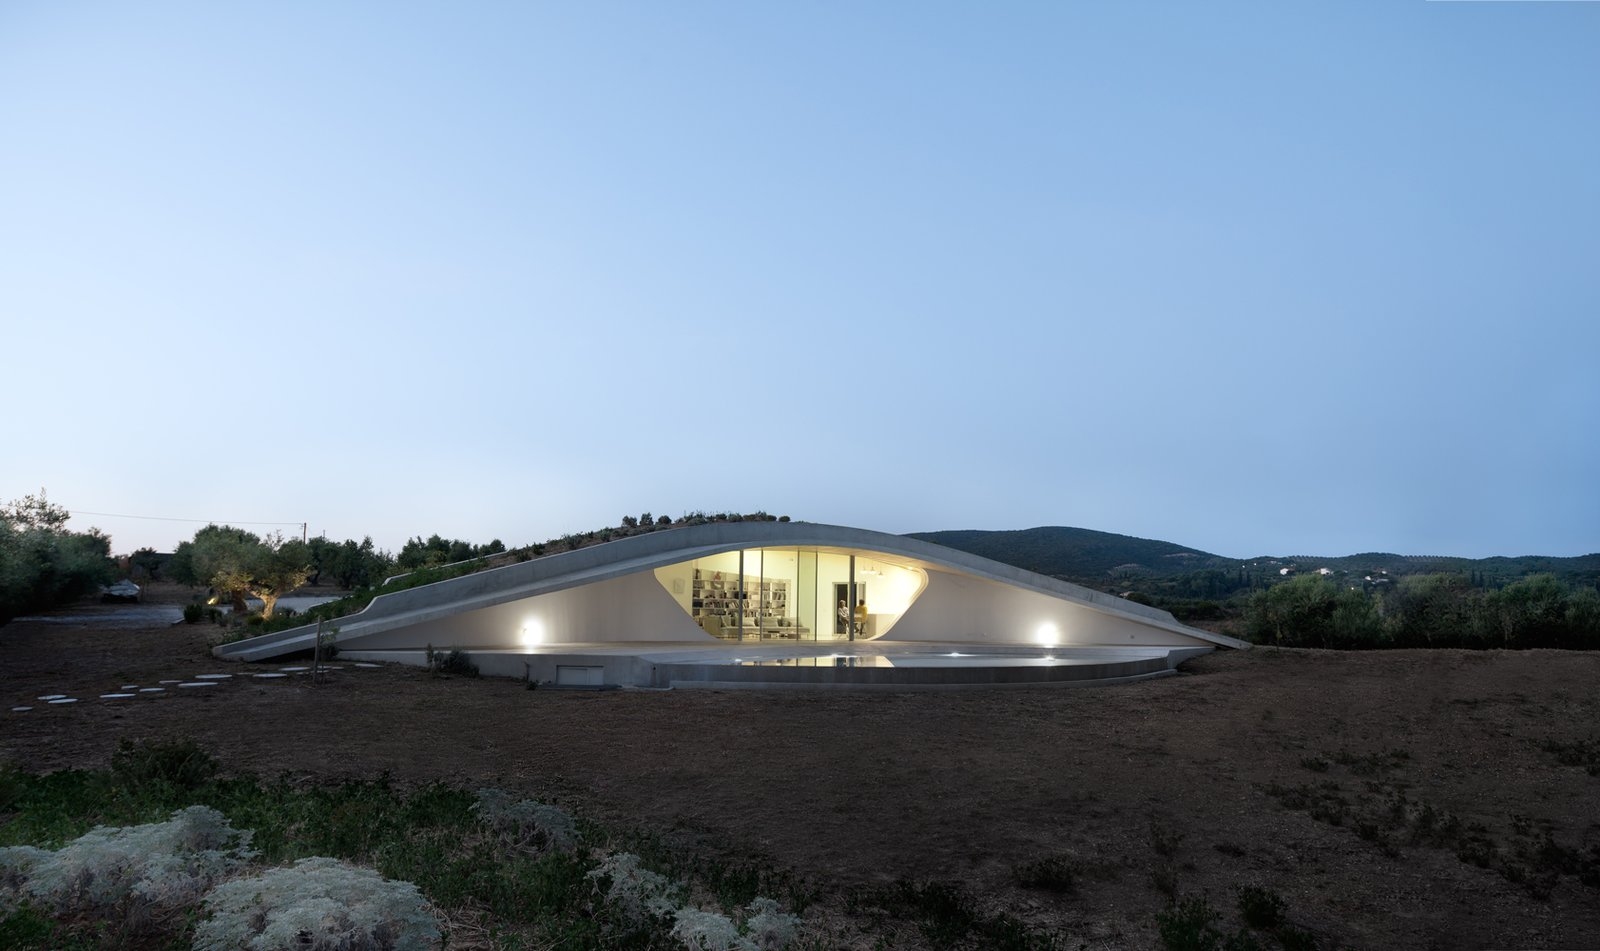 Exterior and House Building Type  Photo 9 of 9 in This Y-Shaped Greek Villa Looks Like a Flying Saucer That's Embedded Into the Hills